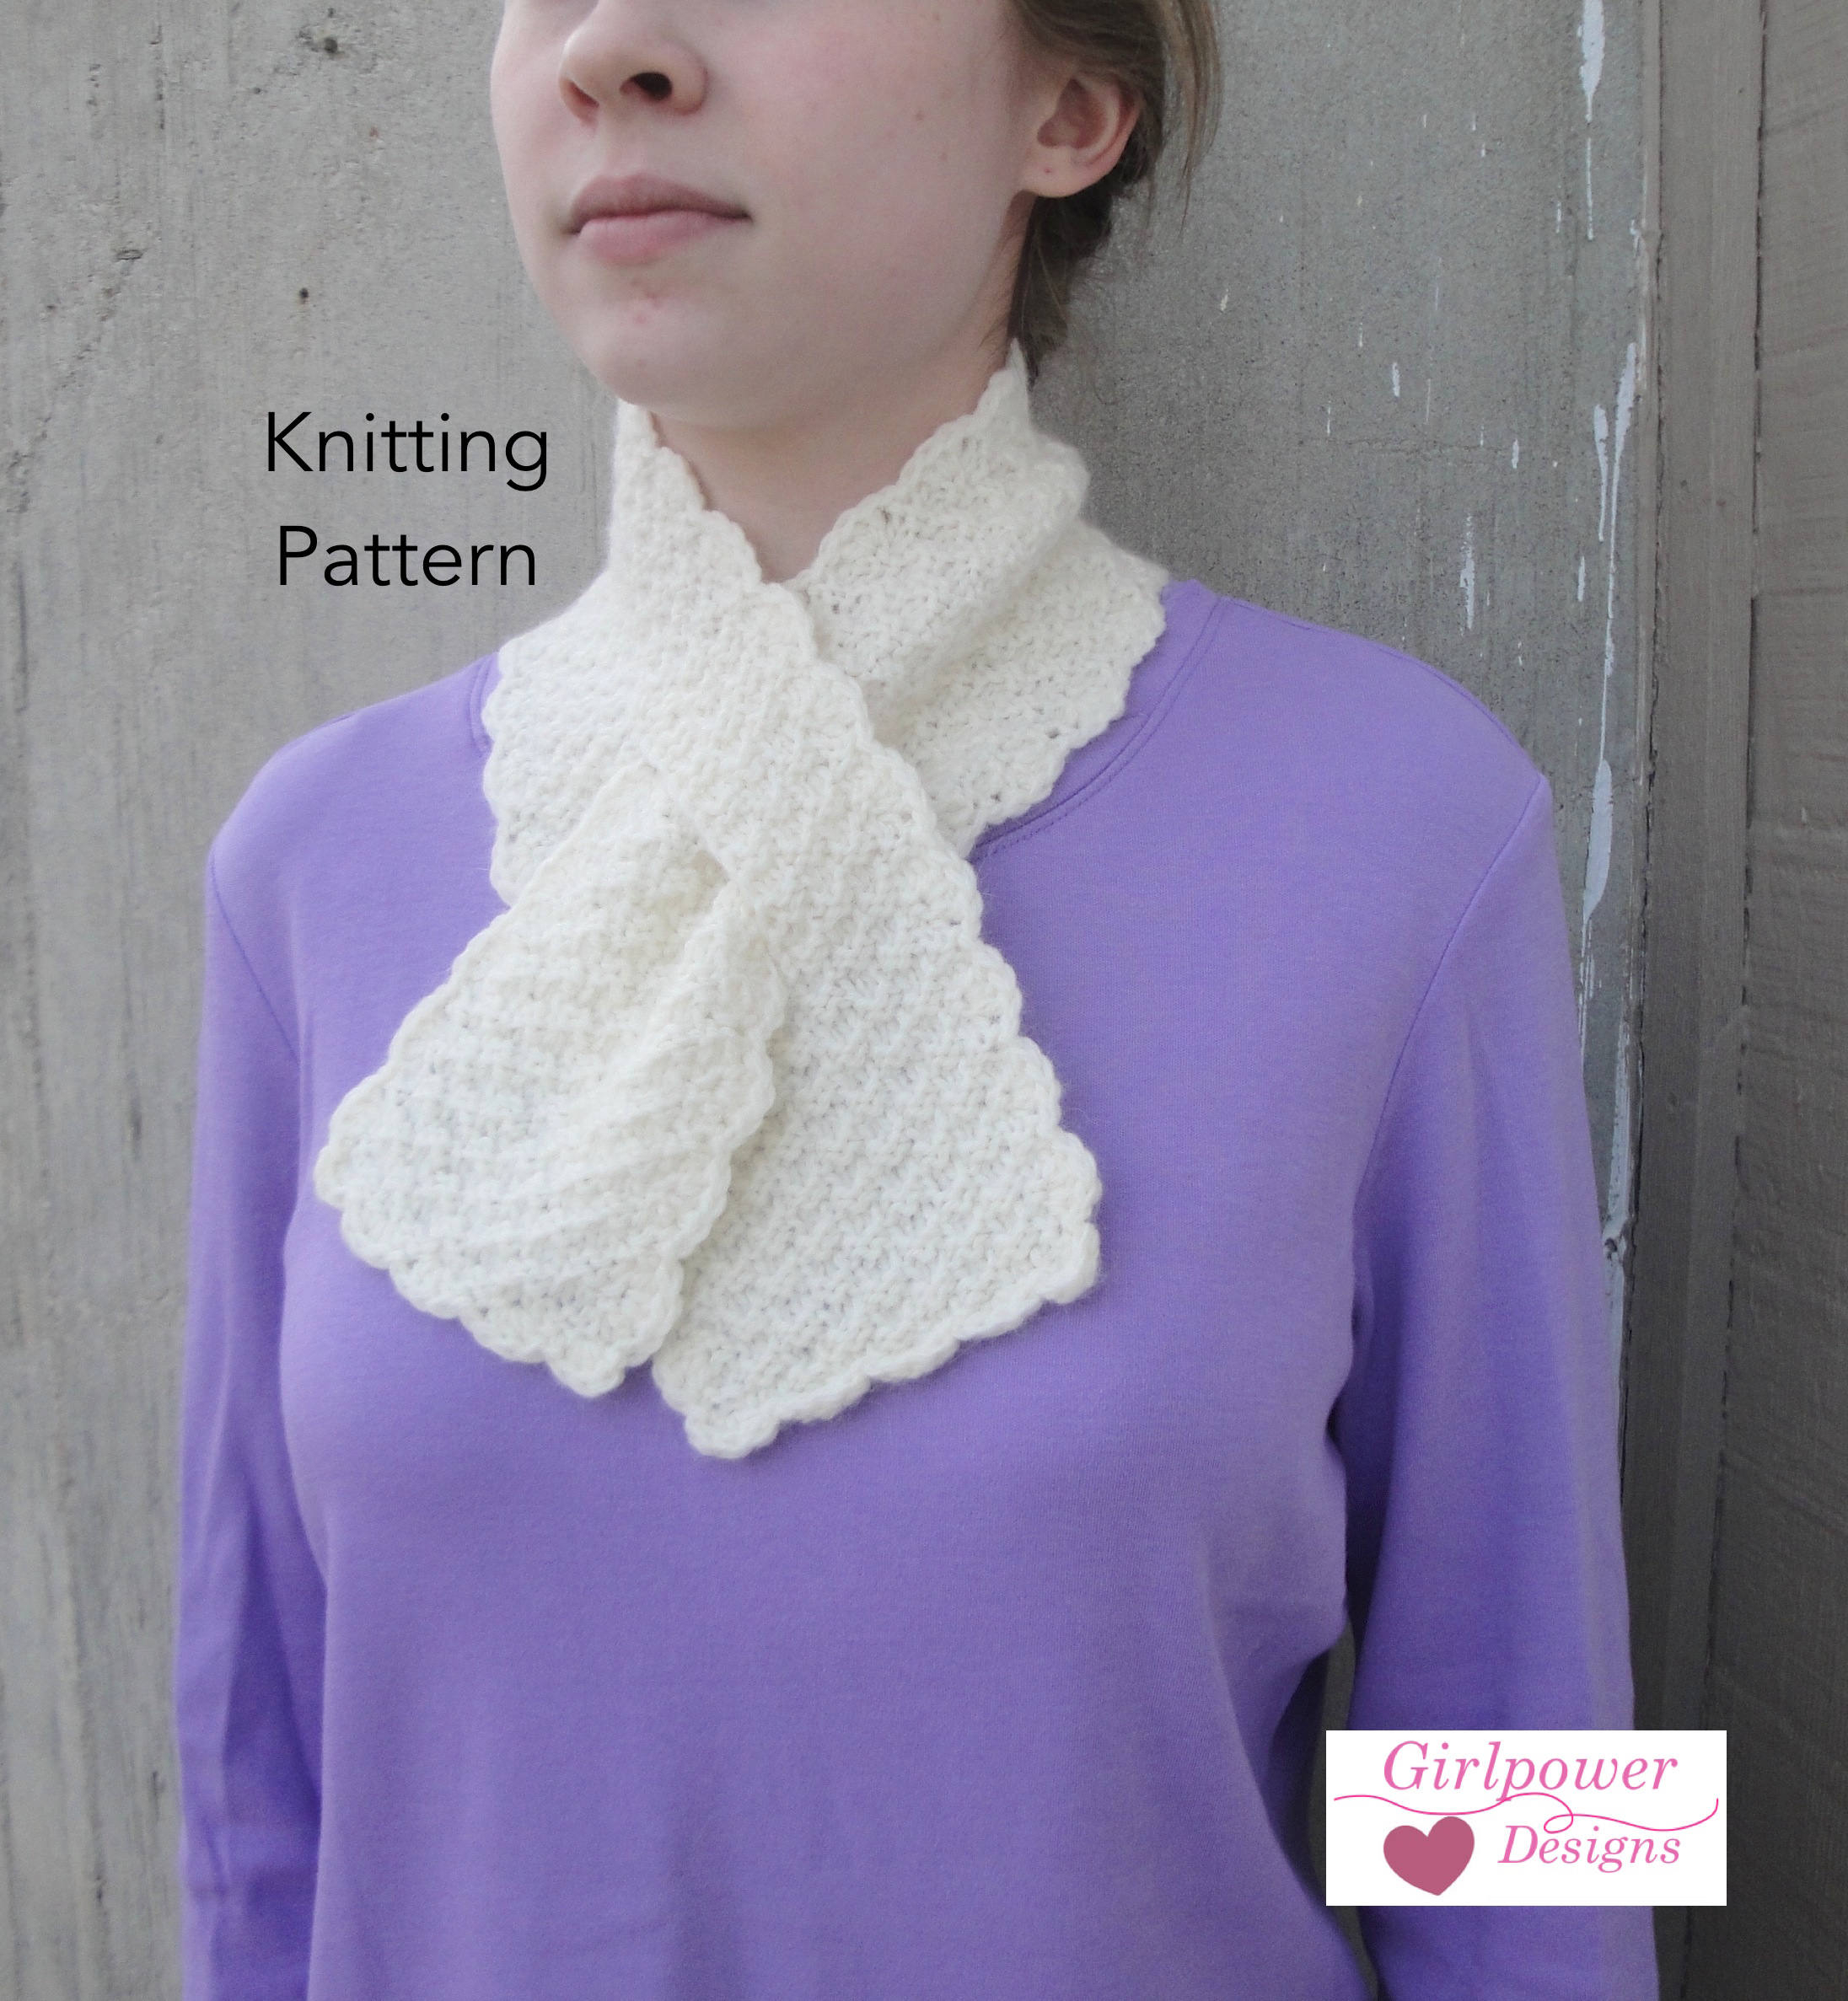 Ascot Scarf Knitting Pattern Pull Through Scarf Knitting Pattern Easy Ascot Neck Warmer Office Scarflette Keyhole Scarf Worsted Weight Yarn